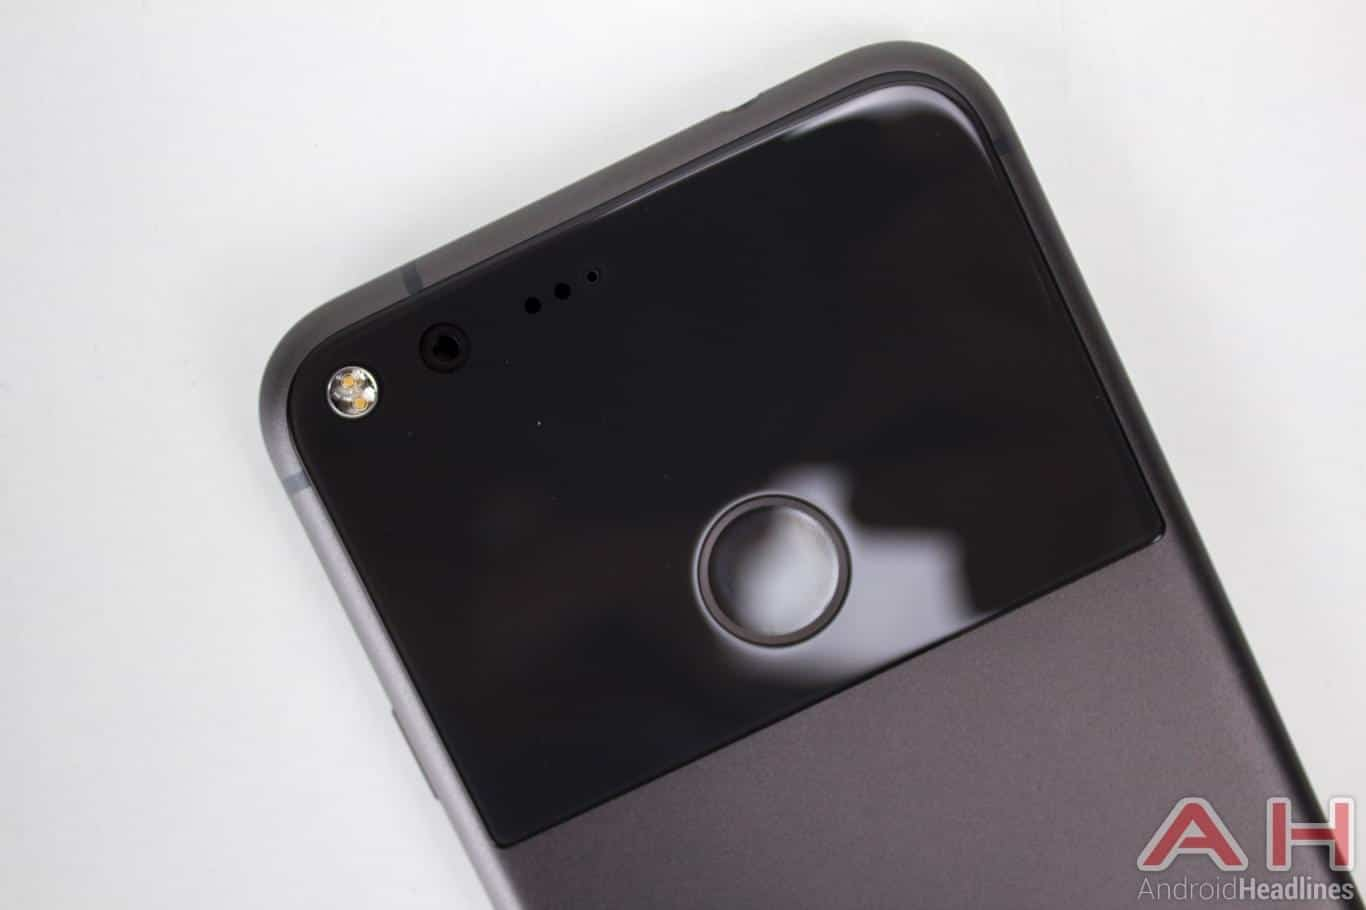 Google's Pixel 2 will come in new 'kinda blue' color